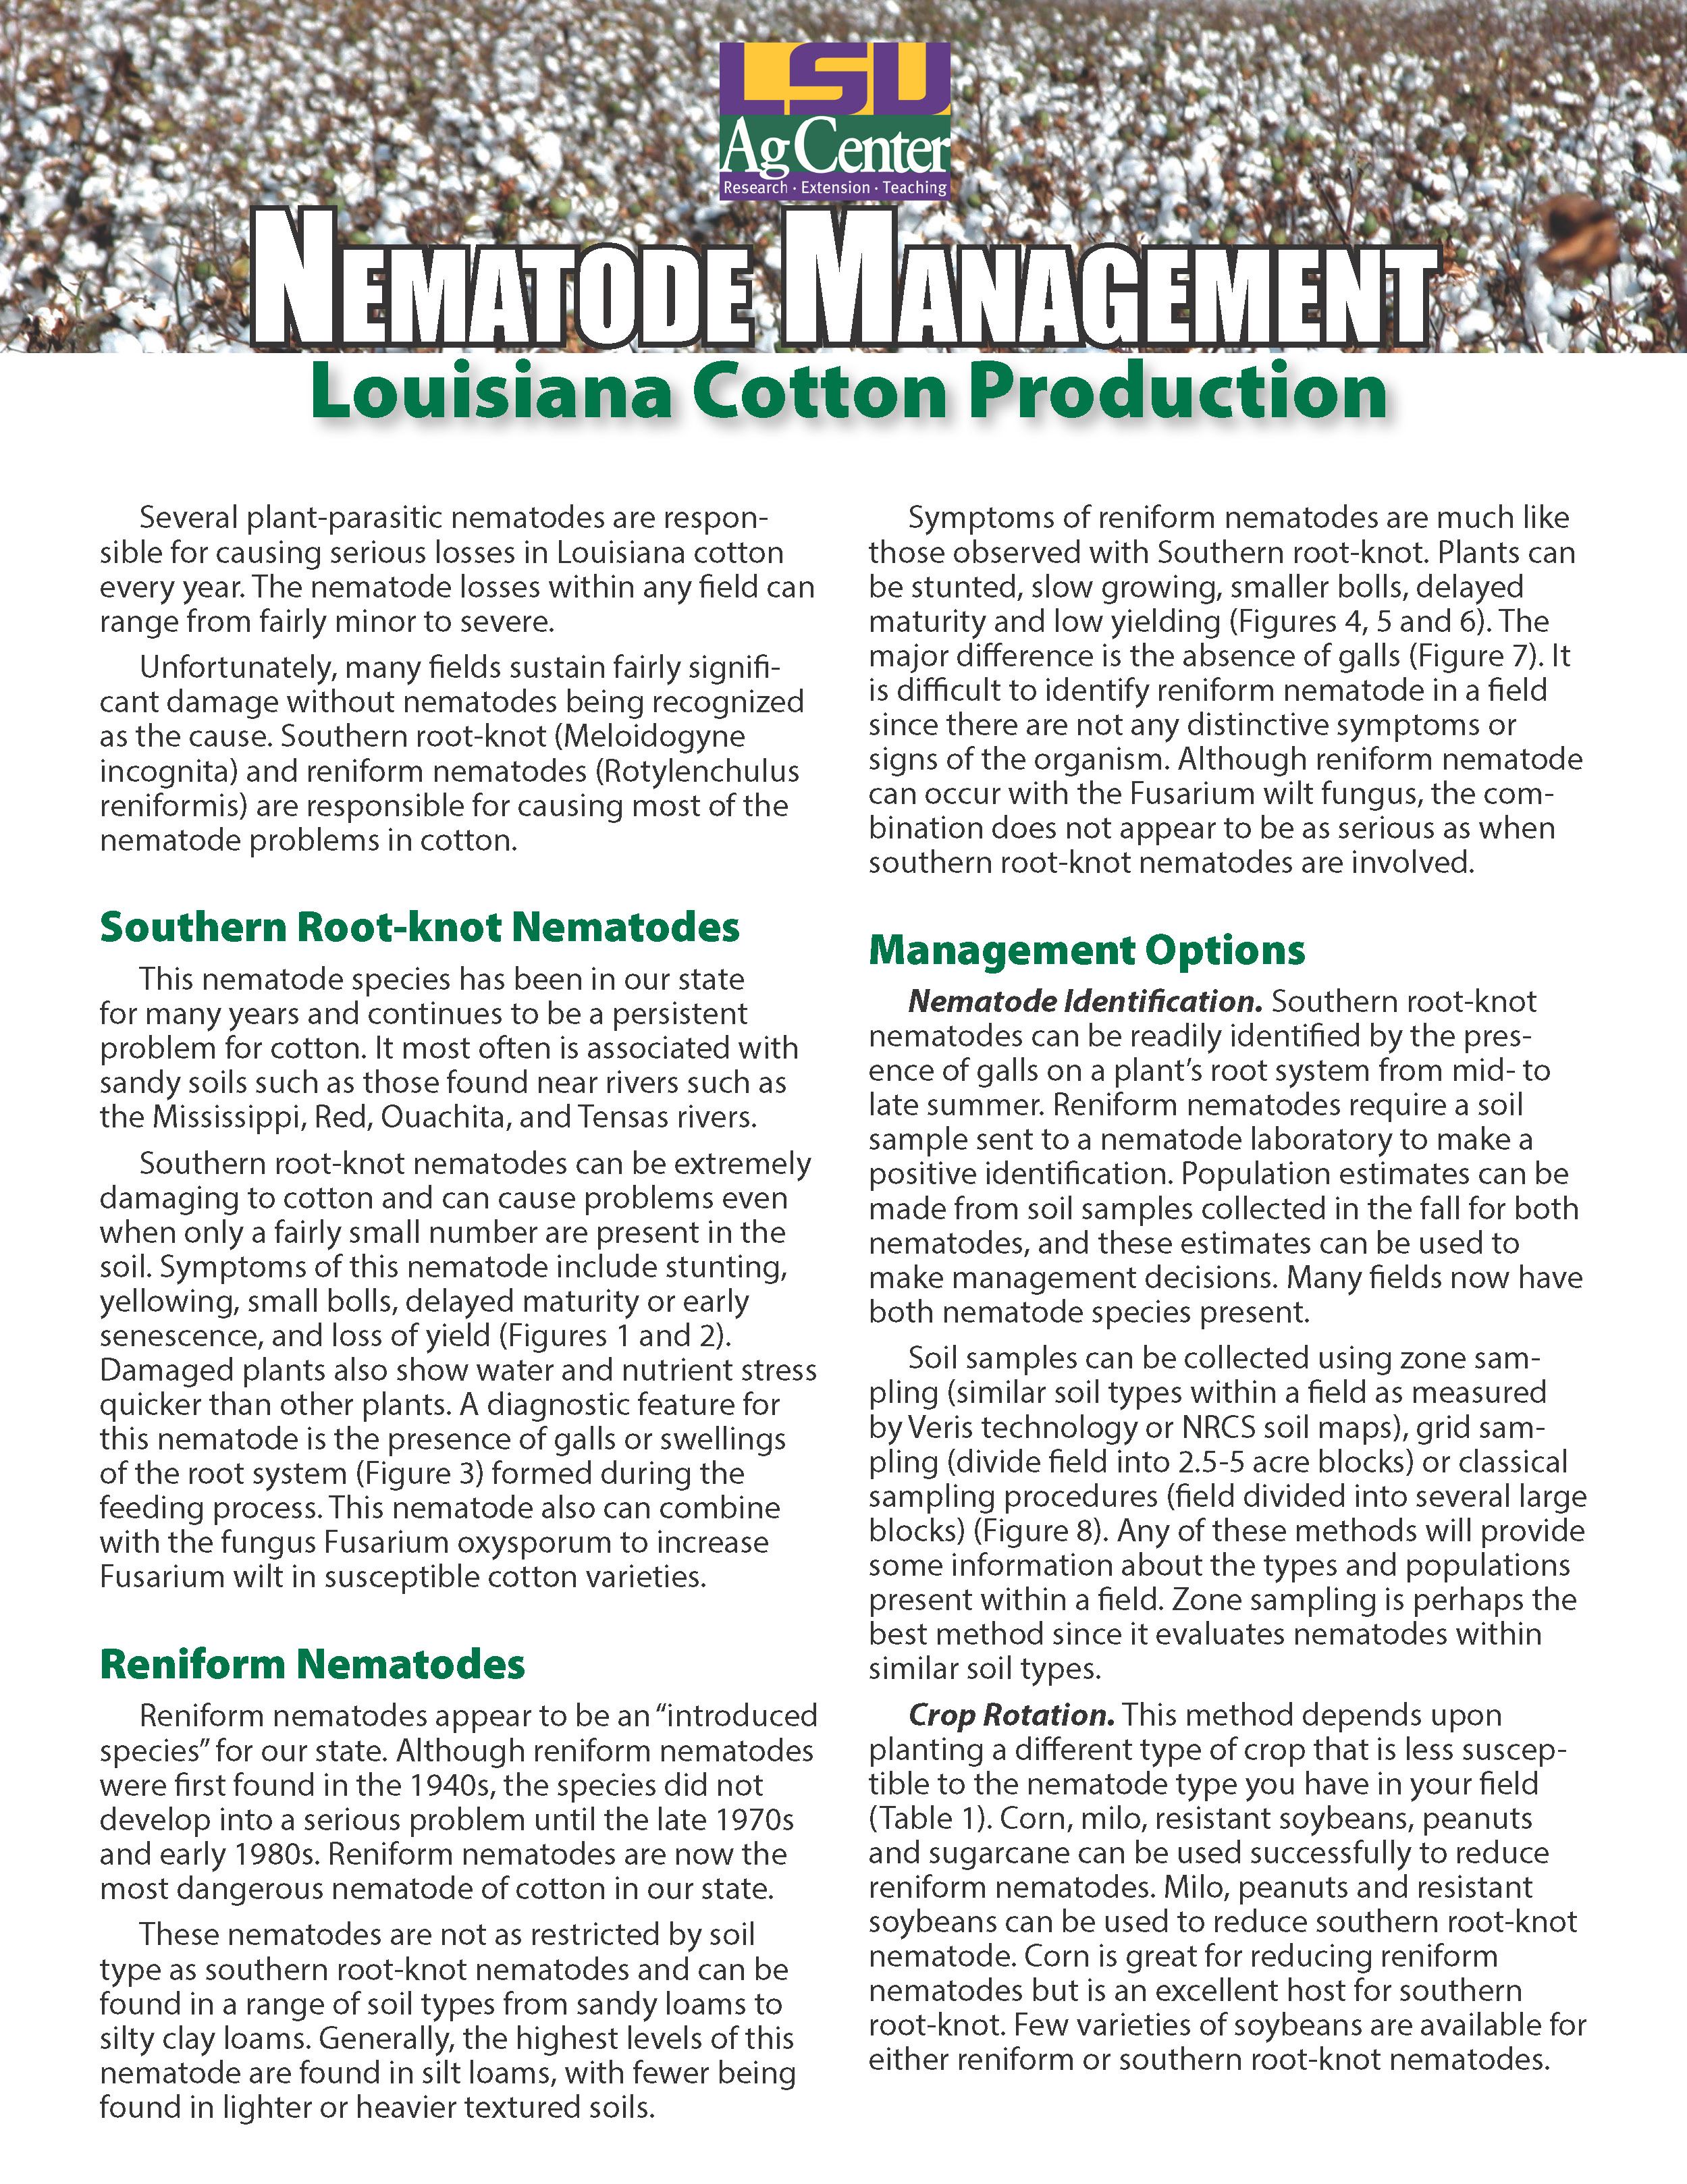 Nematode Management in Louisiana Cotton Production